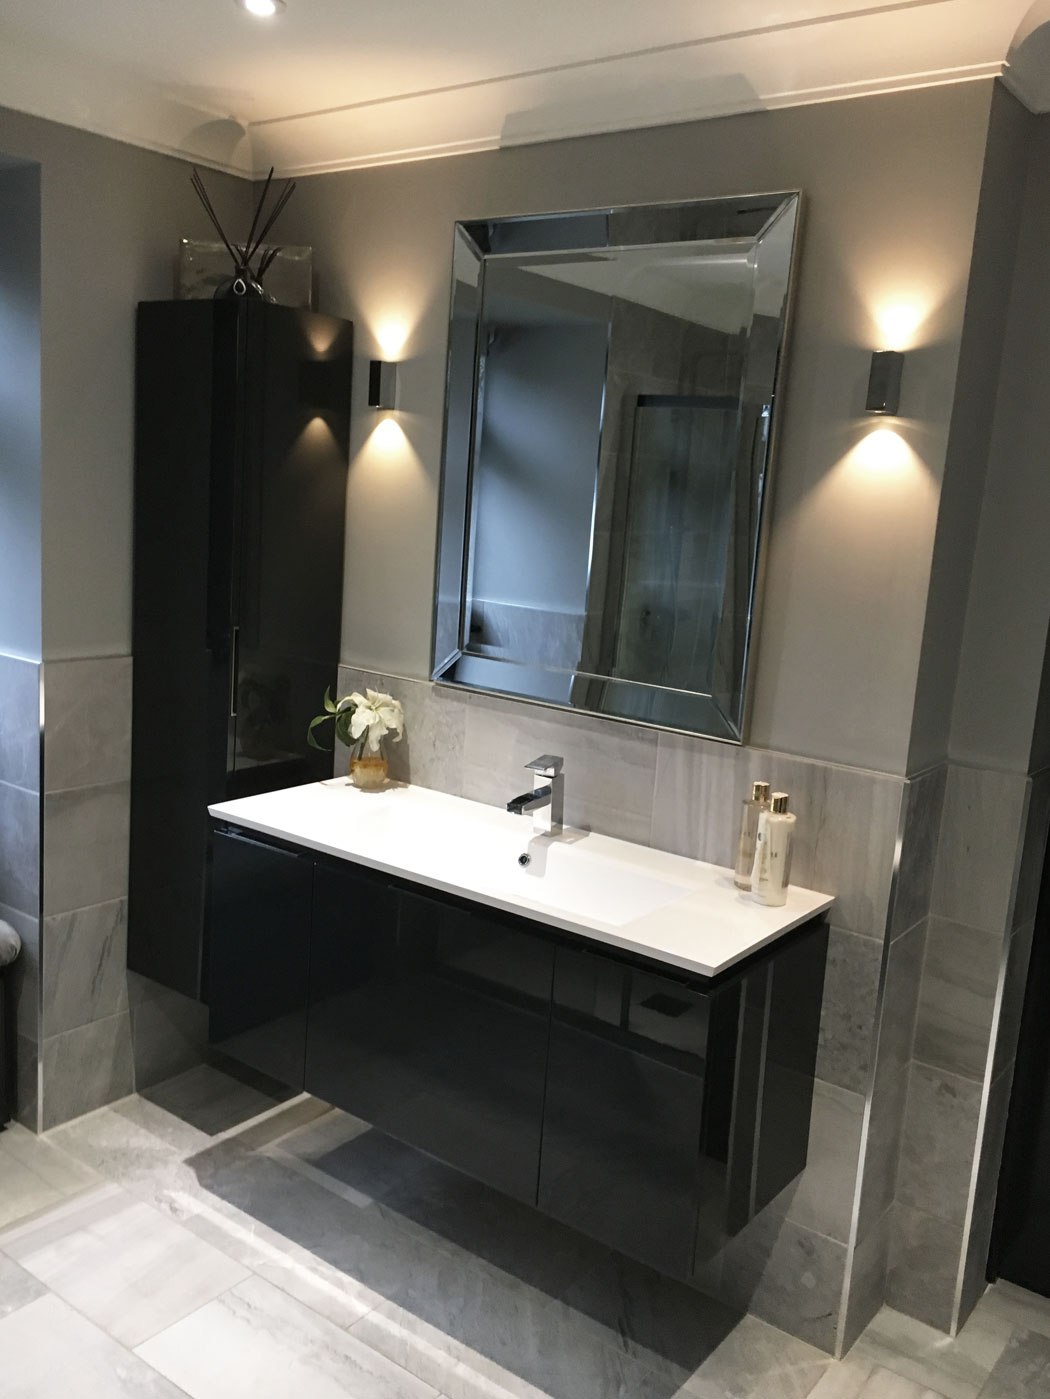 Full house extension, West Wickham - Bathroom